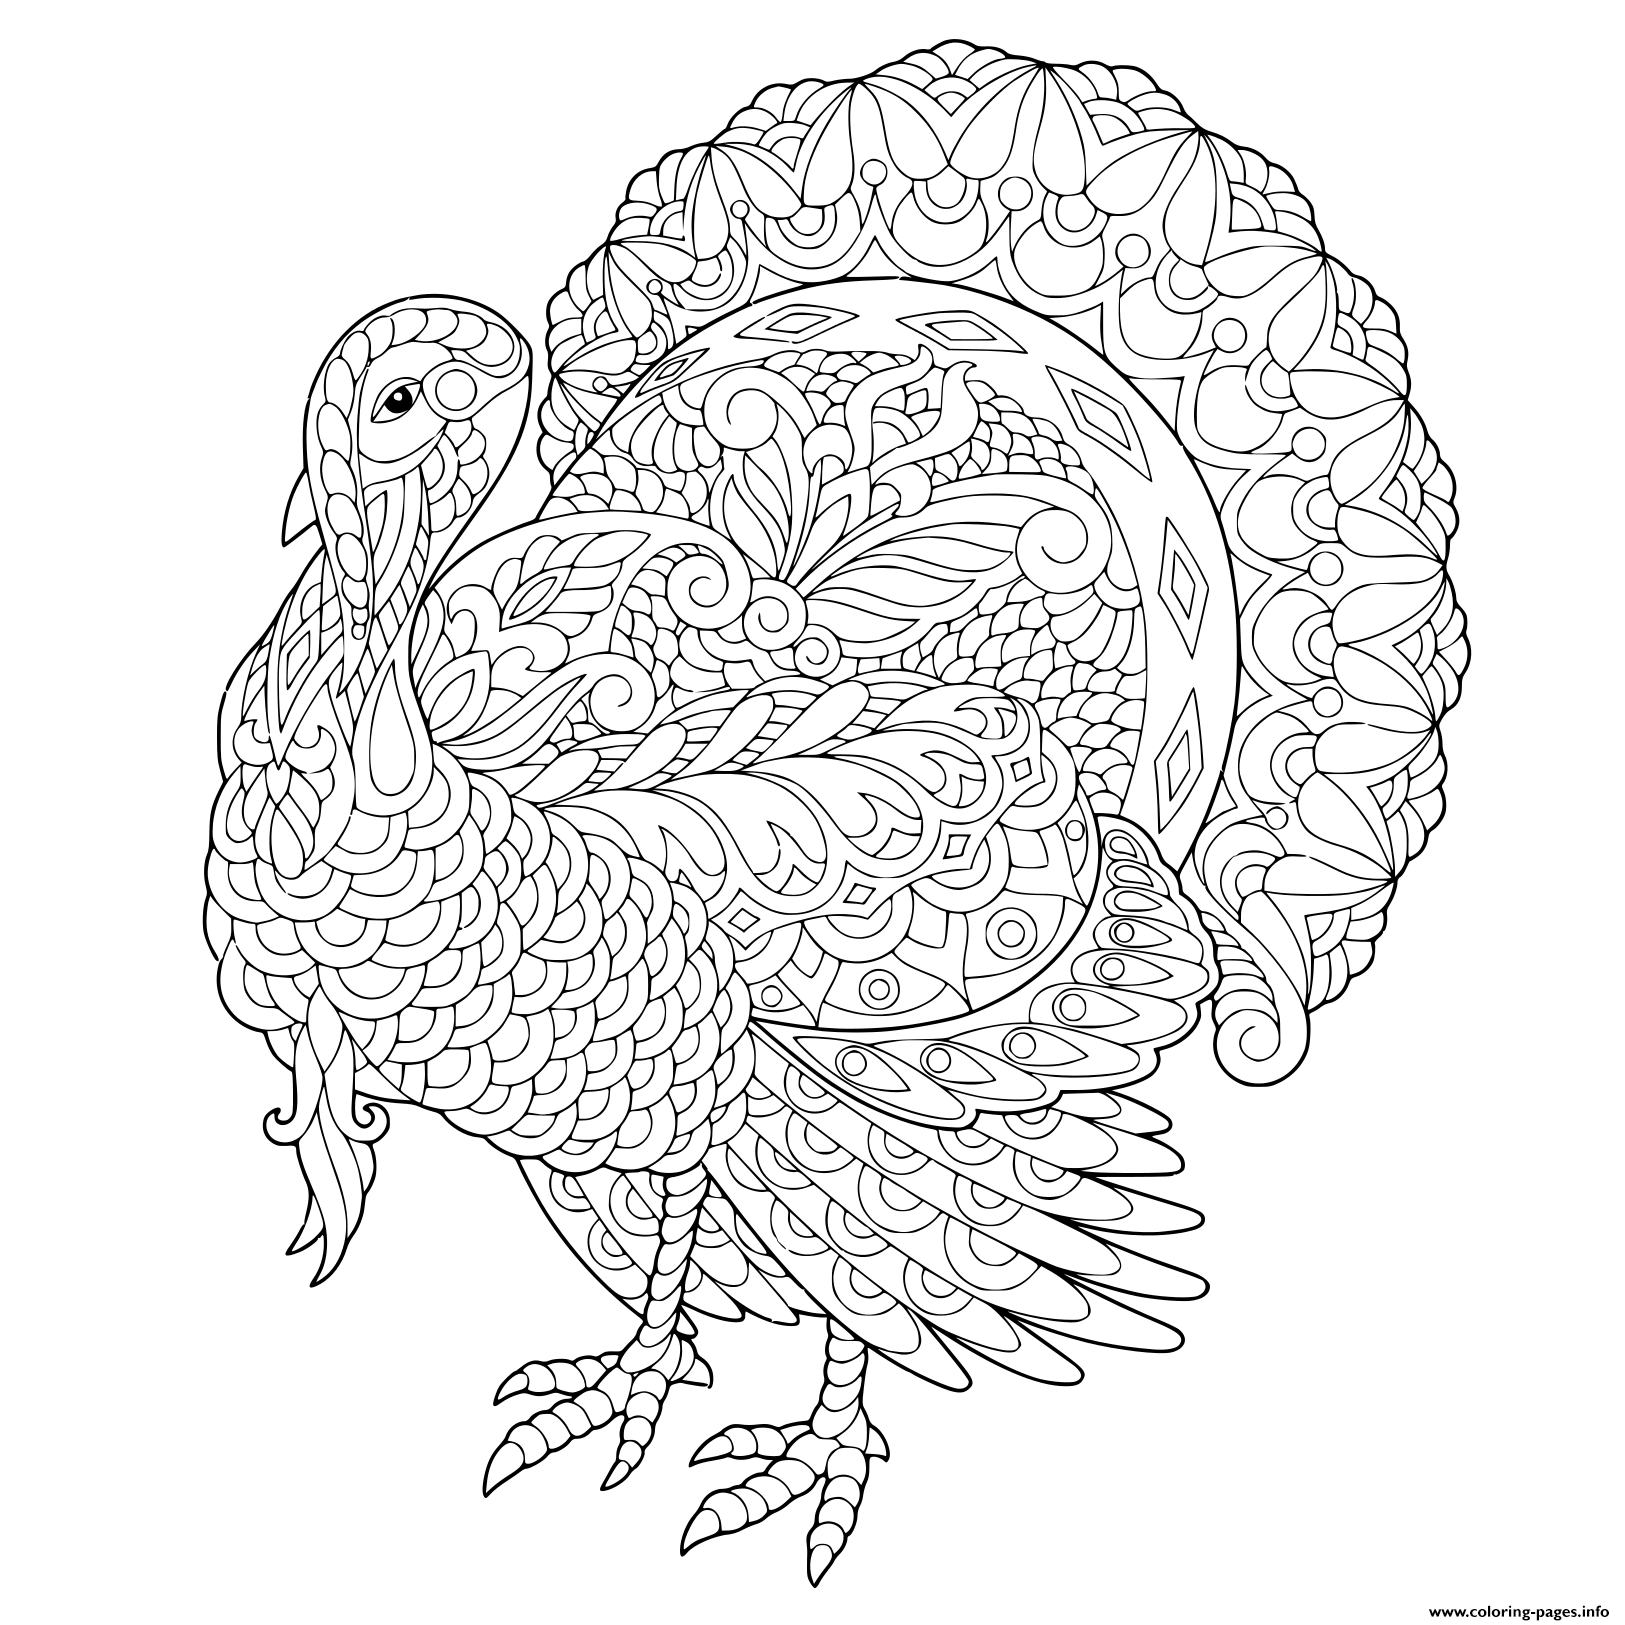 Turkey For Thanksgiving Day Greeting Adult Zentangle coloring pages